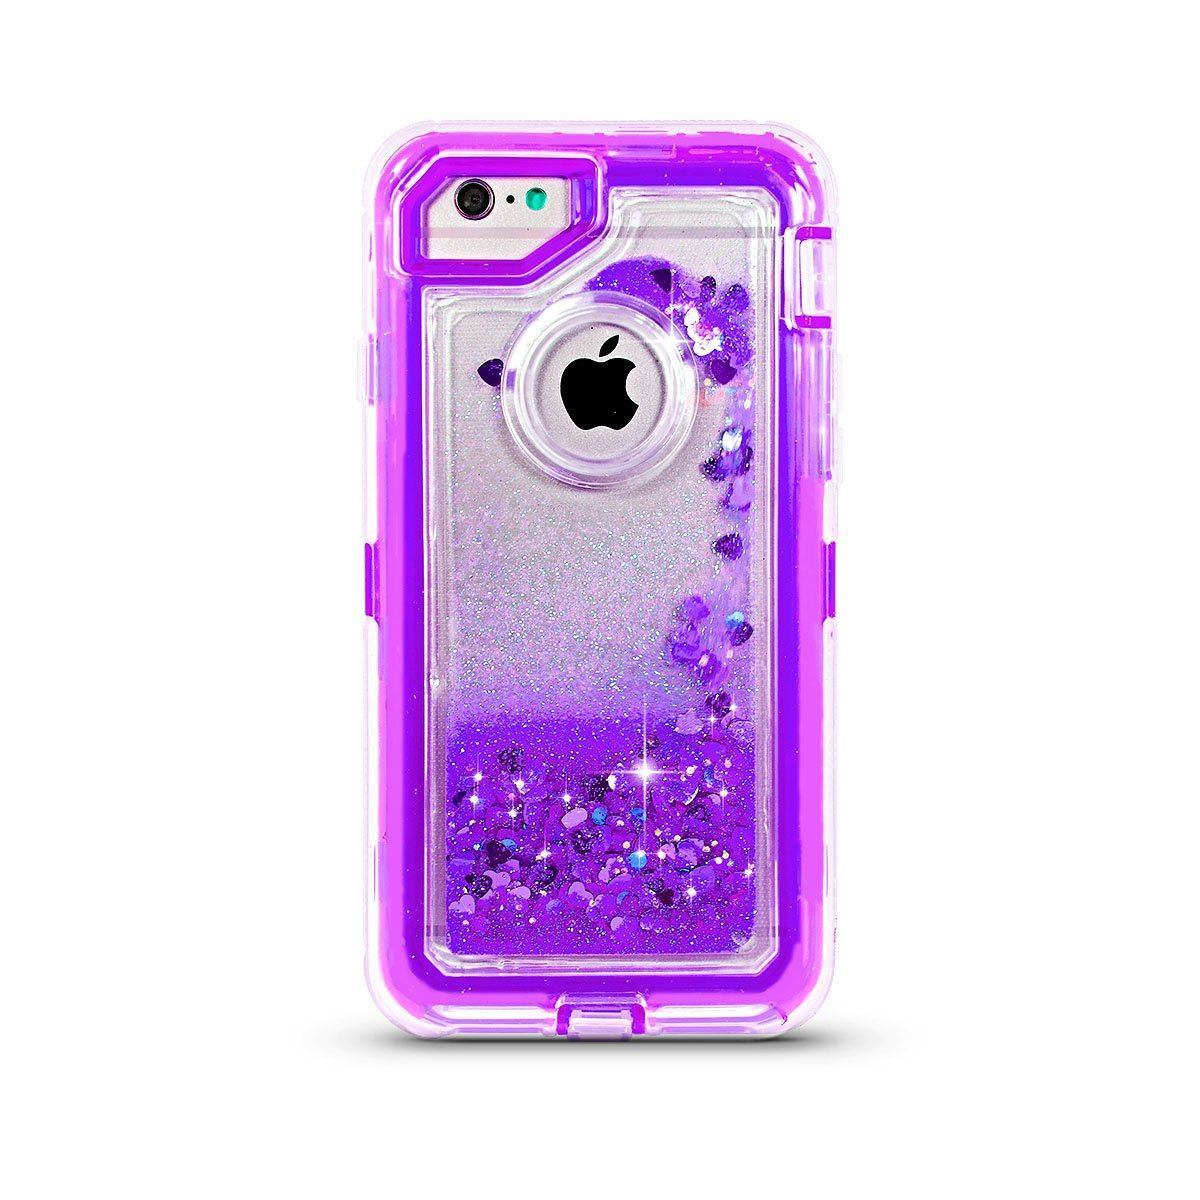 Liquid Protector Case for iPhone 6P/ 7P /8 Plus - Purple